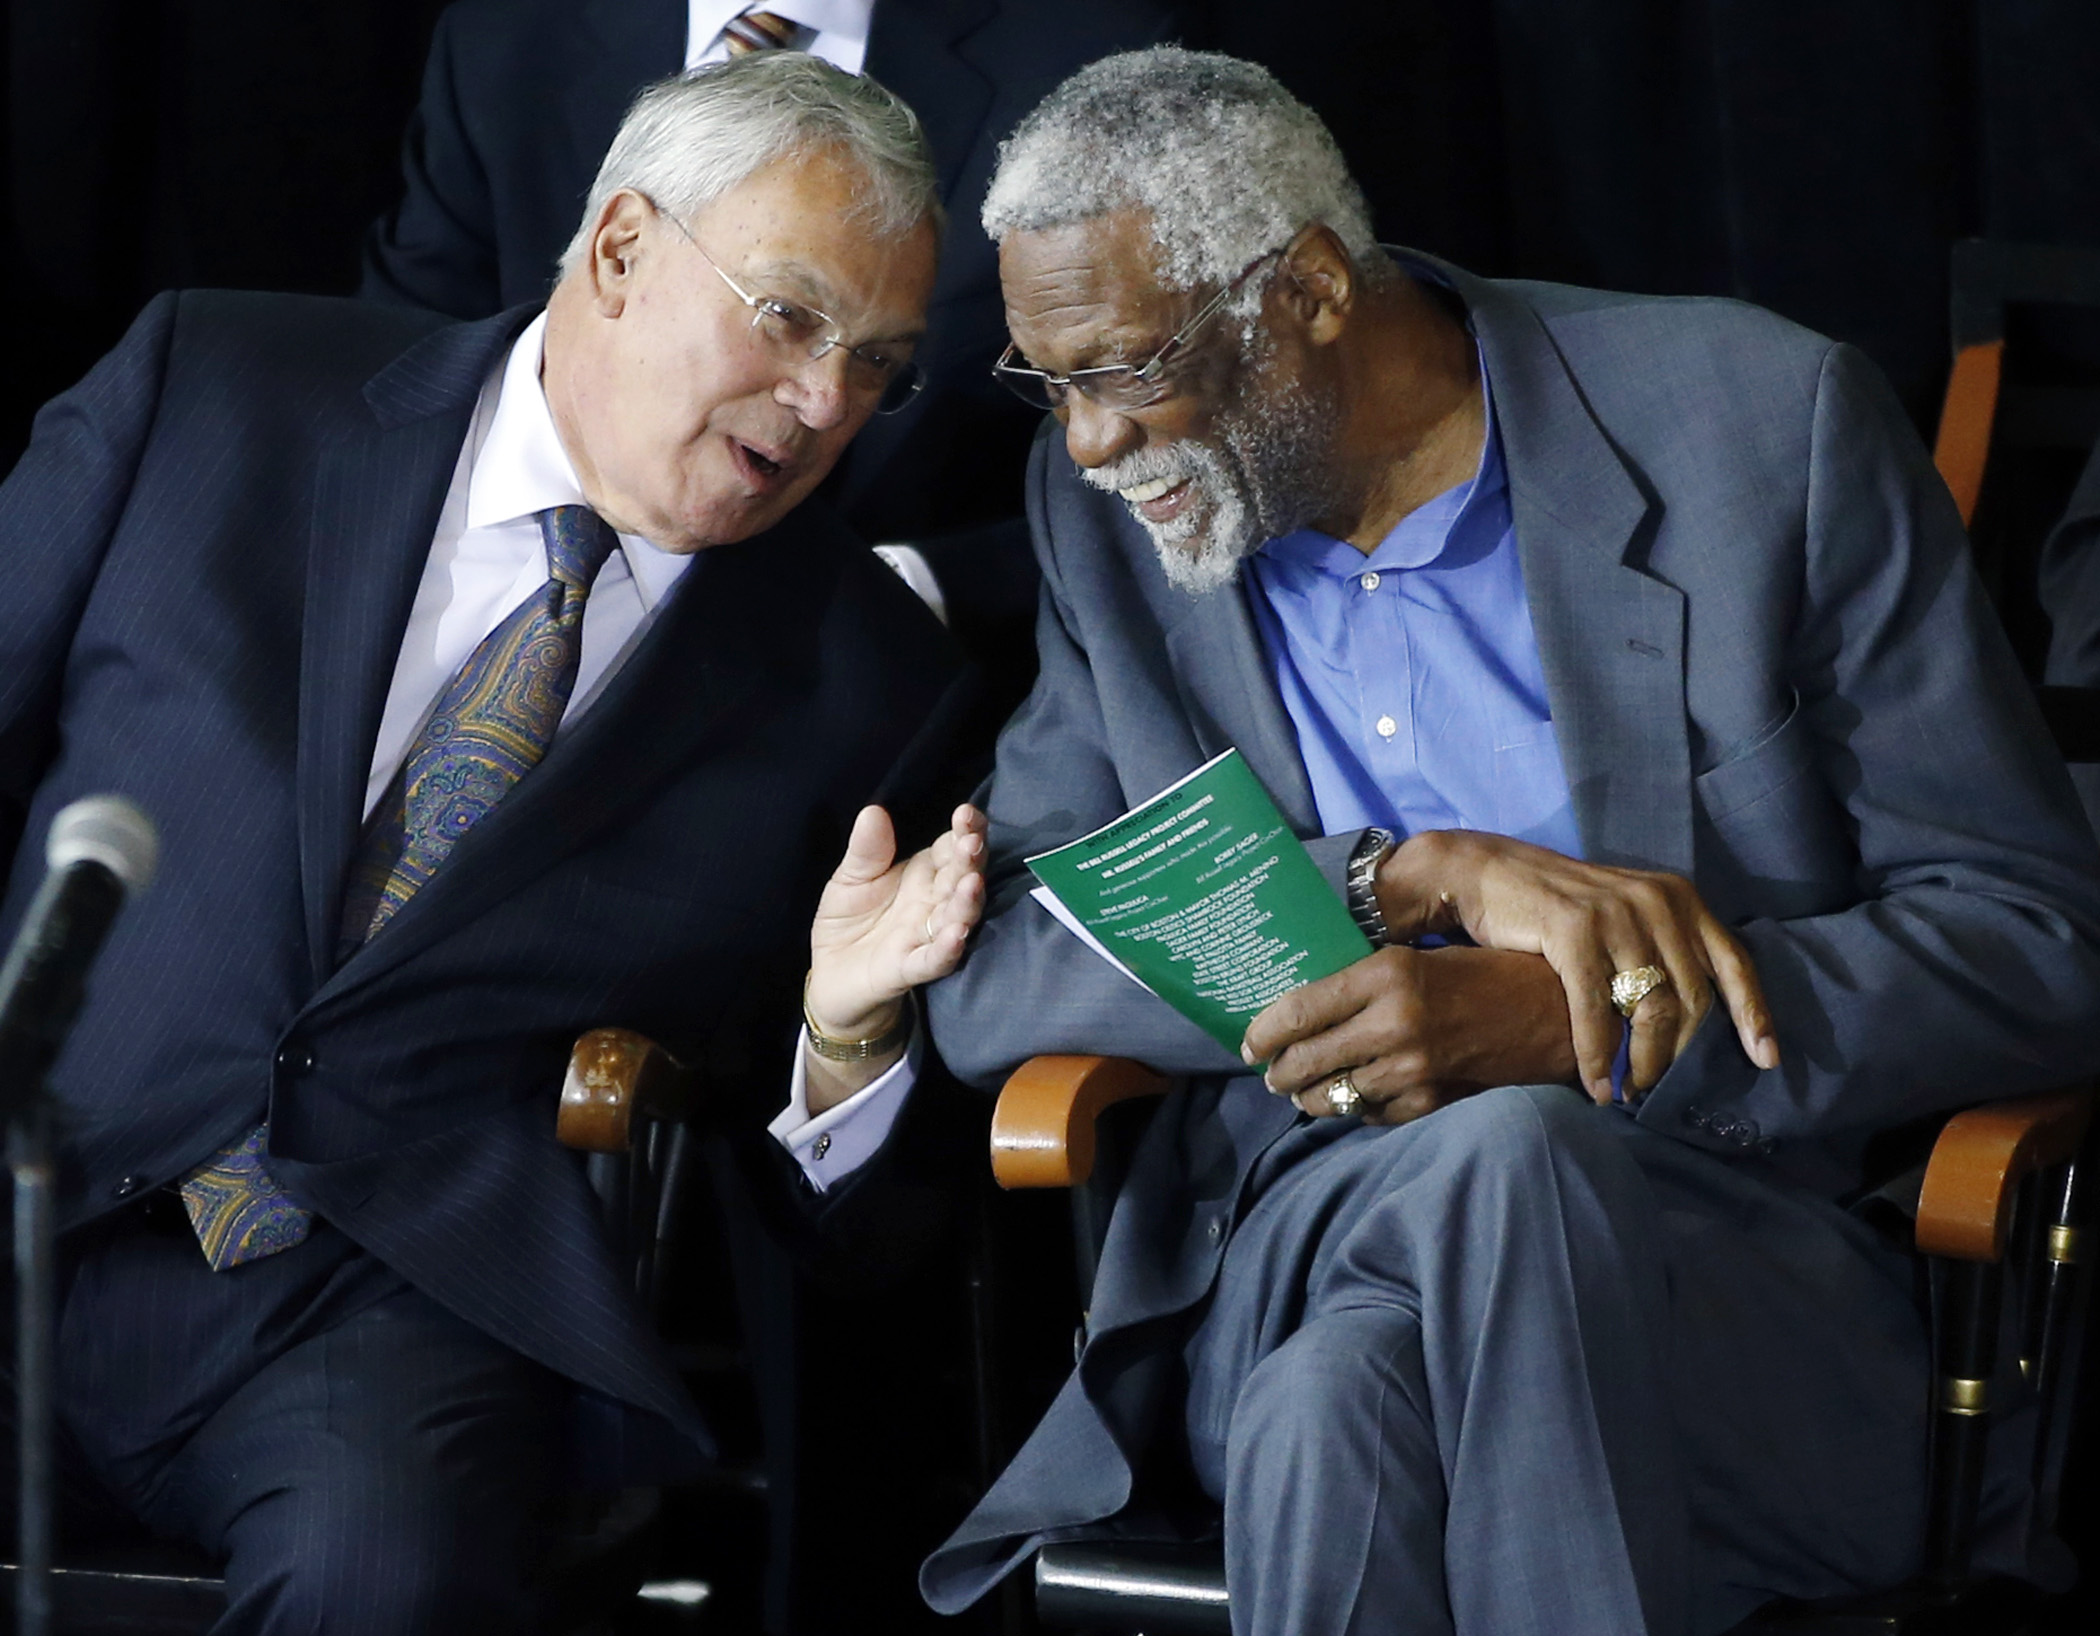 Former Boston Celtics basketball star Bill Russell, right, chats with Boston Mayor Thomas Menino during a ceremony honoring Russell after his statue was unveiled at City Hall Plaza in Boston, Friday, Nov. 1, 2013